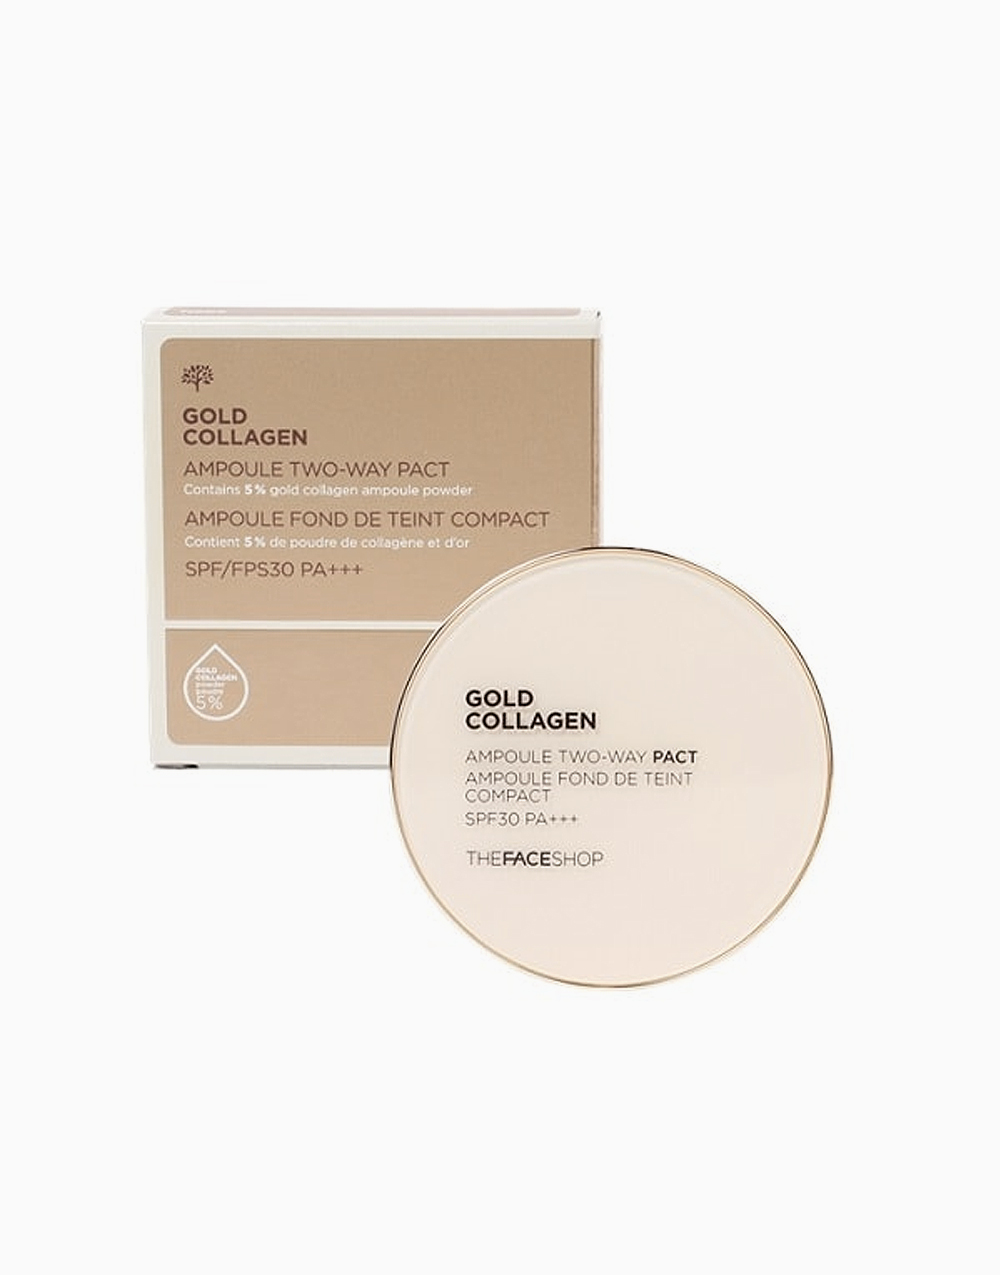 Gold Collagen Ampoule Two-Way Pact SPF30 PA+++ by The Face Shop | V201